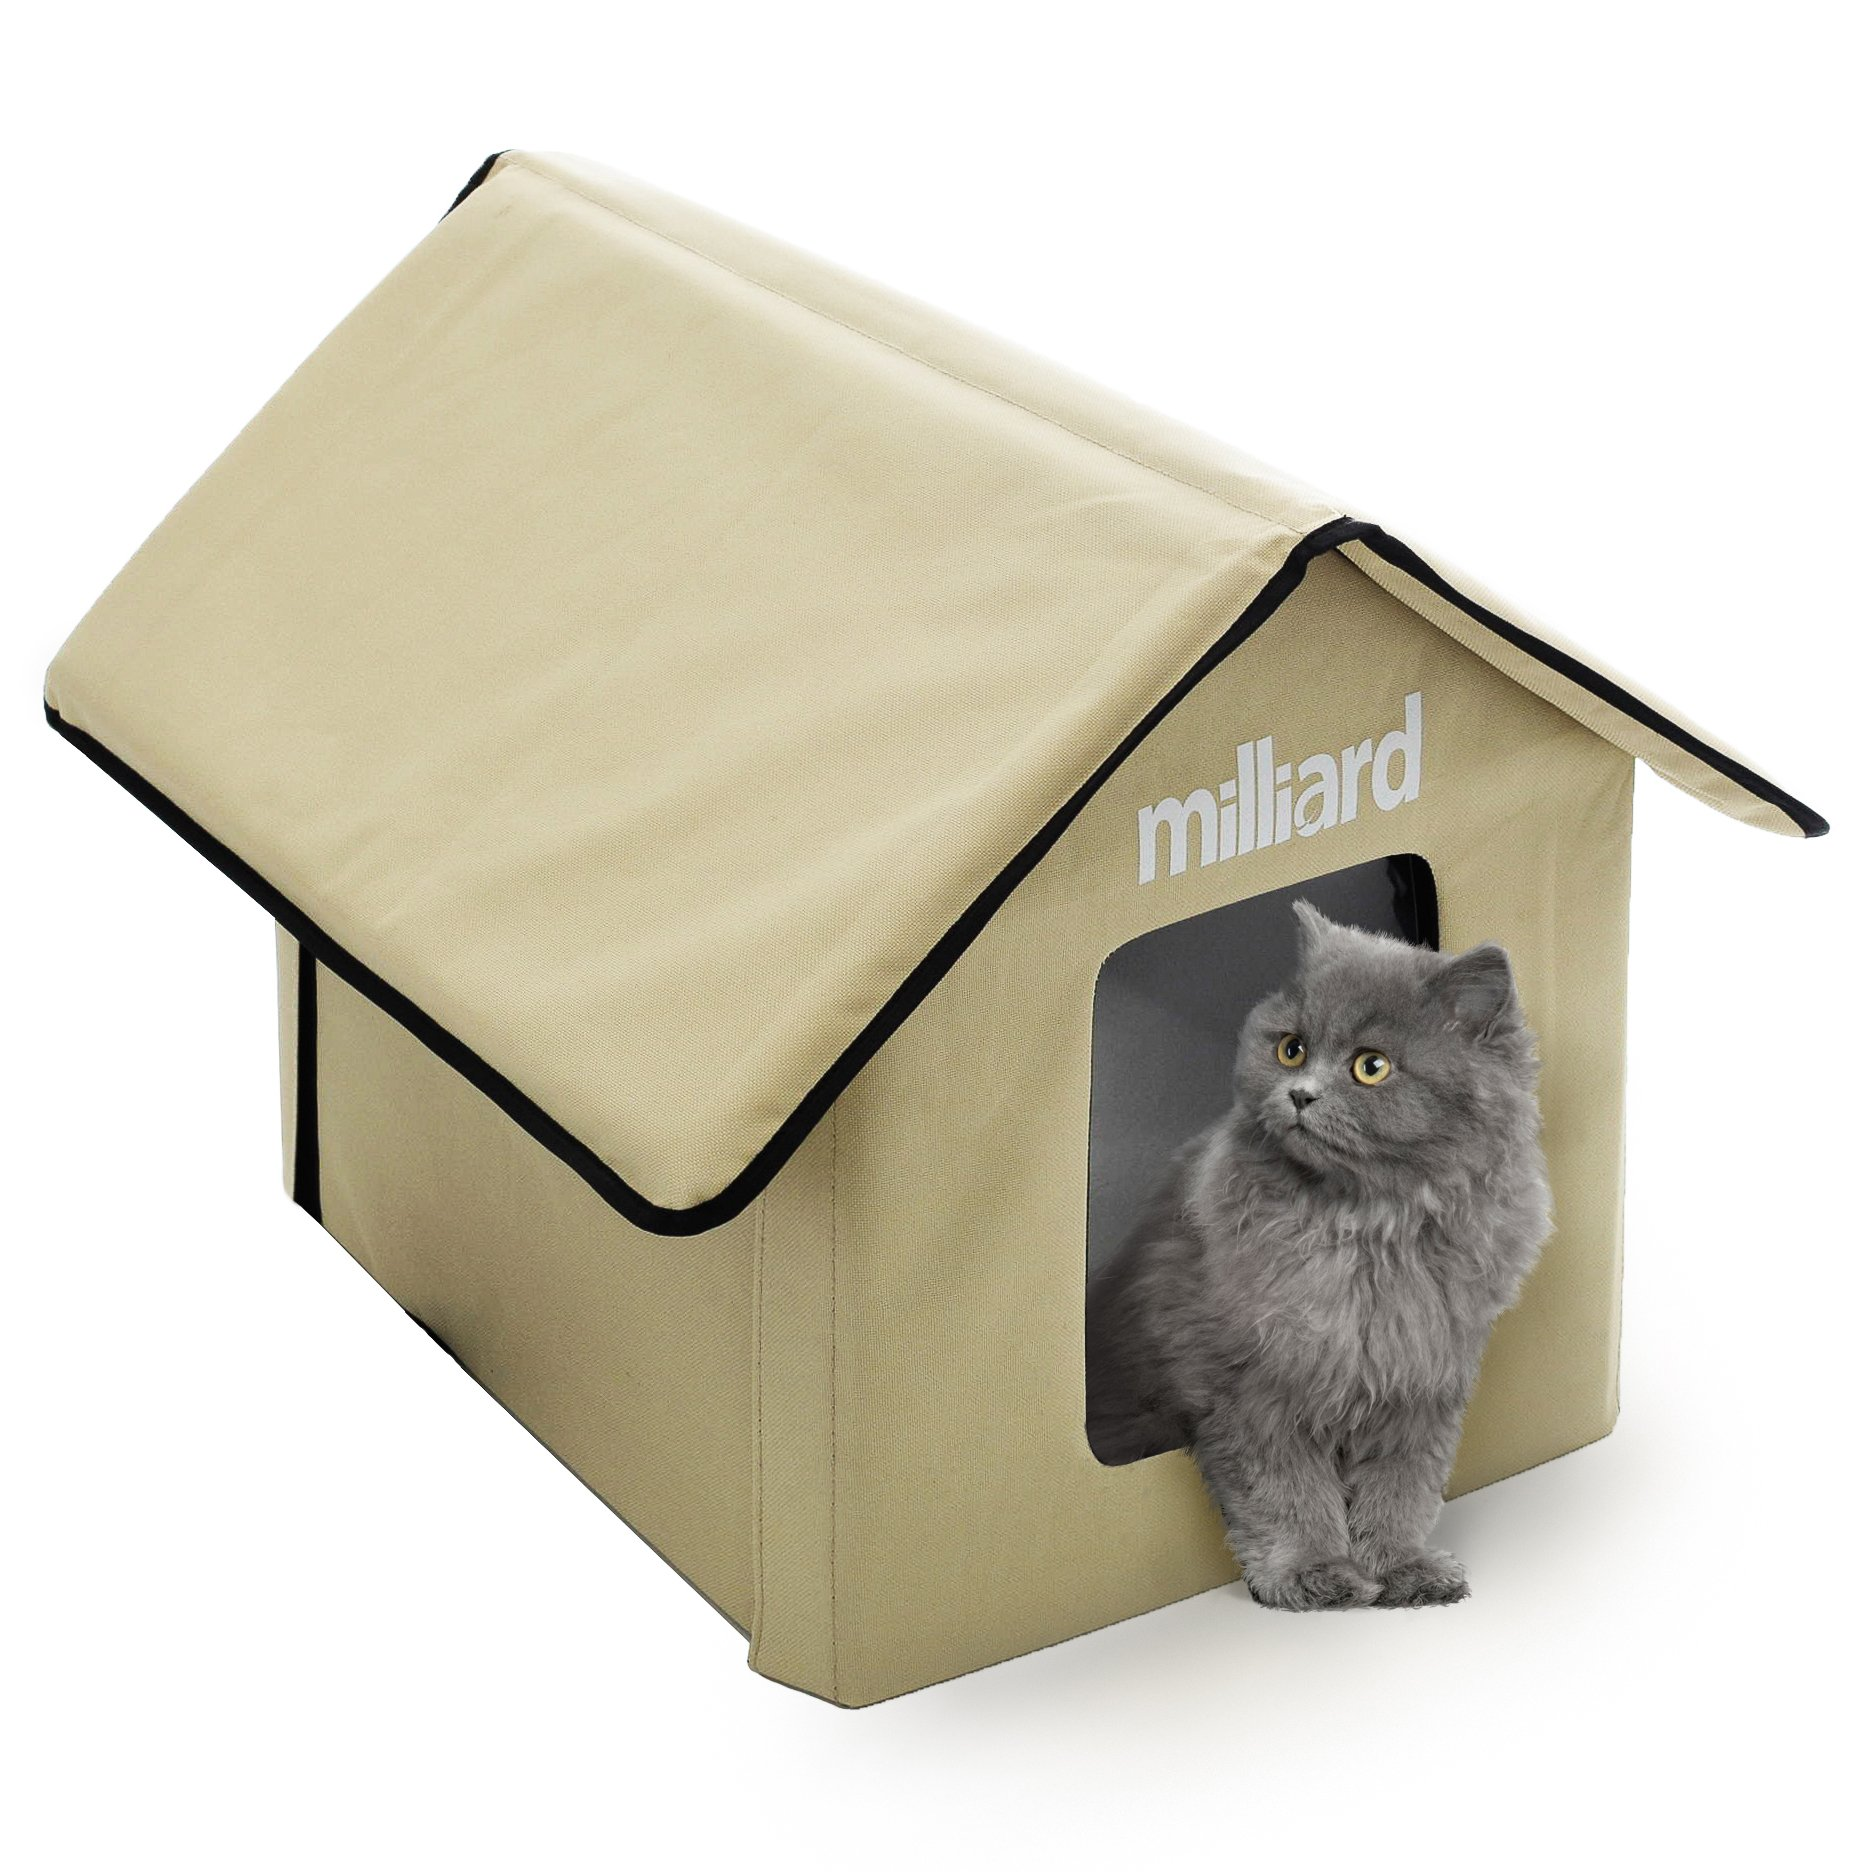 Milliard Outdoor Cat House for Your Pet Kitty or Puppy; Perfect Portable Bed Cave or Shelter, 22 x 18 x 17 in